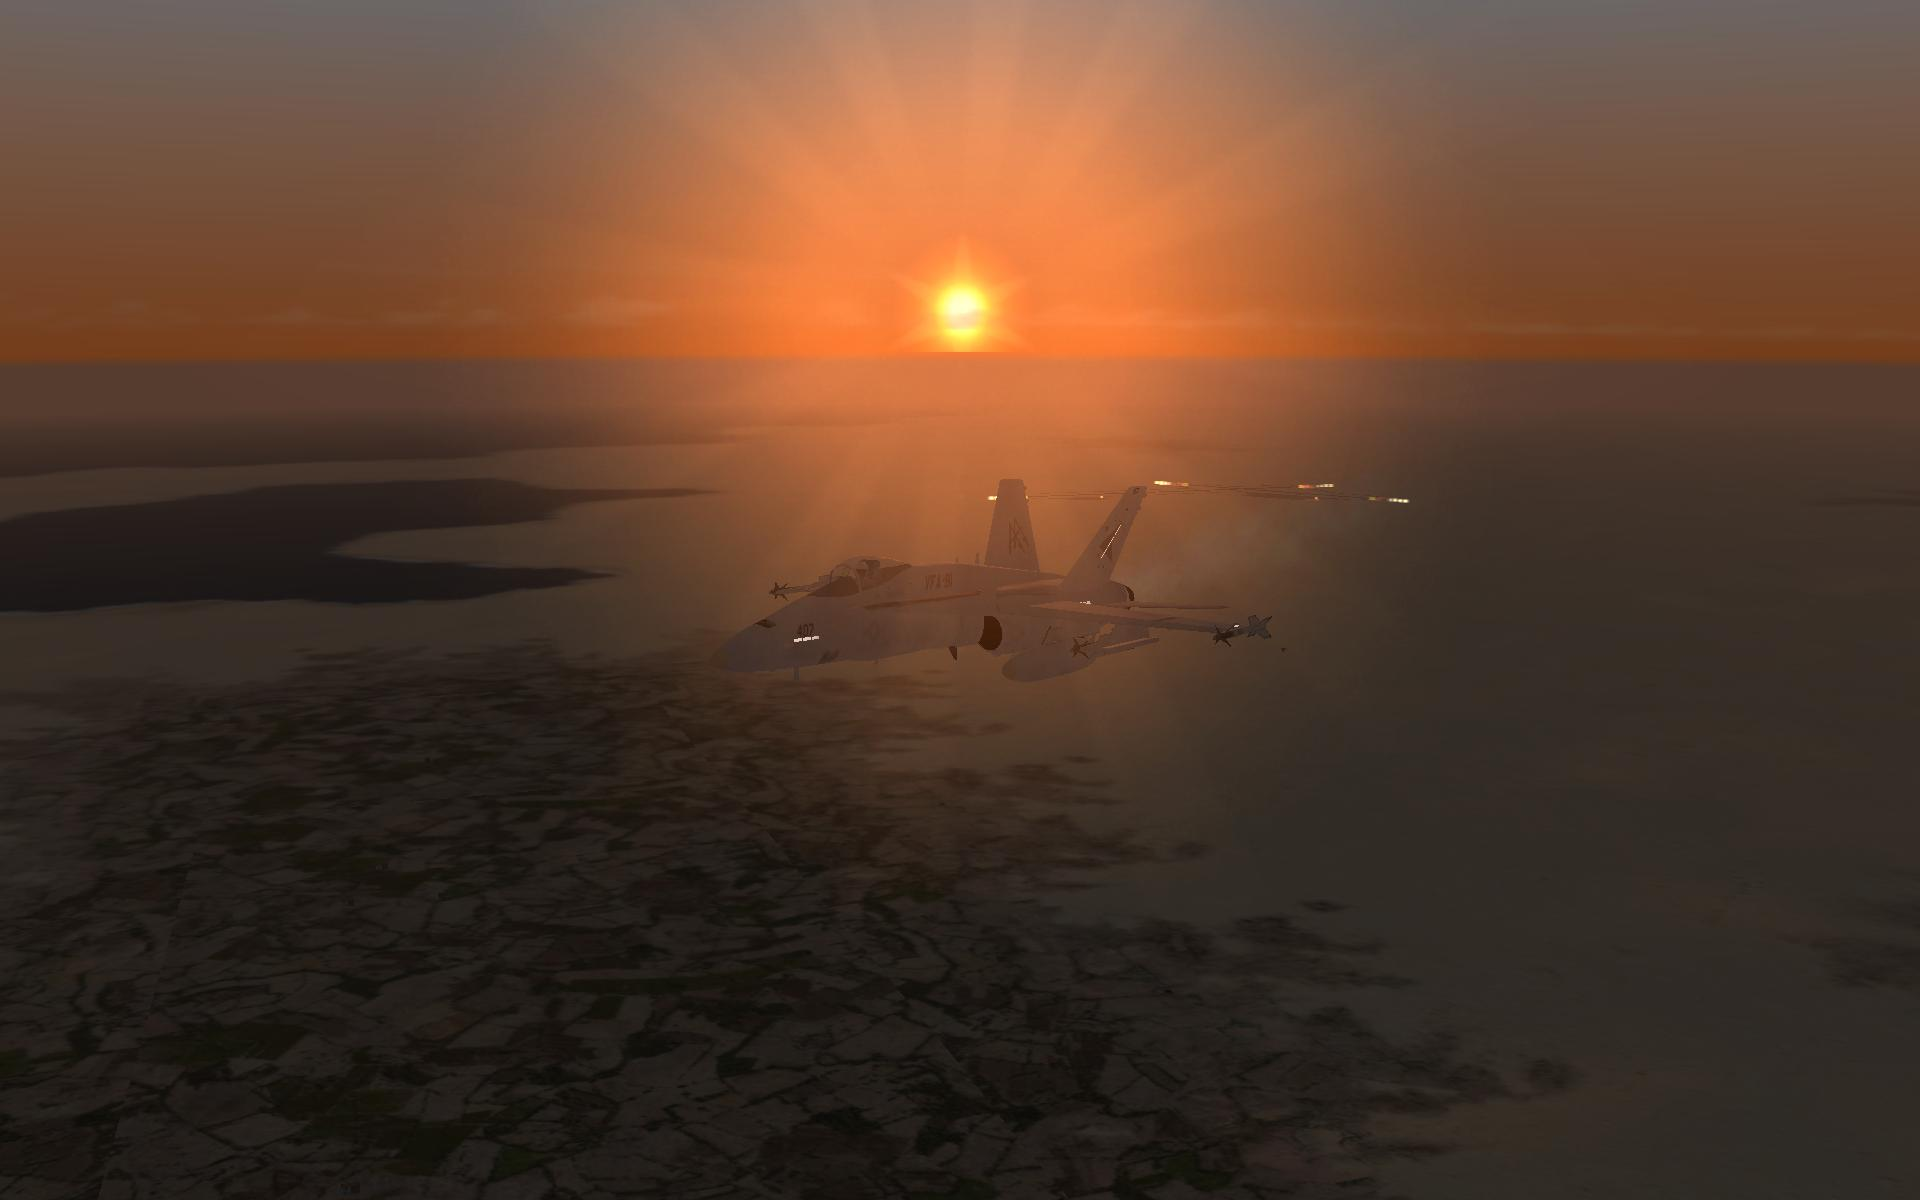 Beautiful End To A night flight over The Gulf